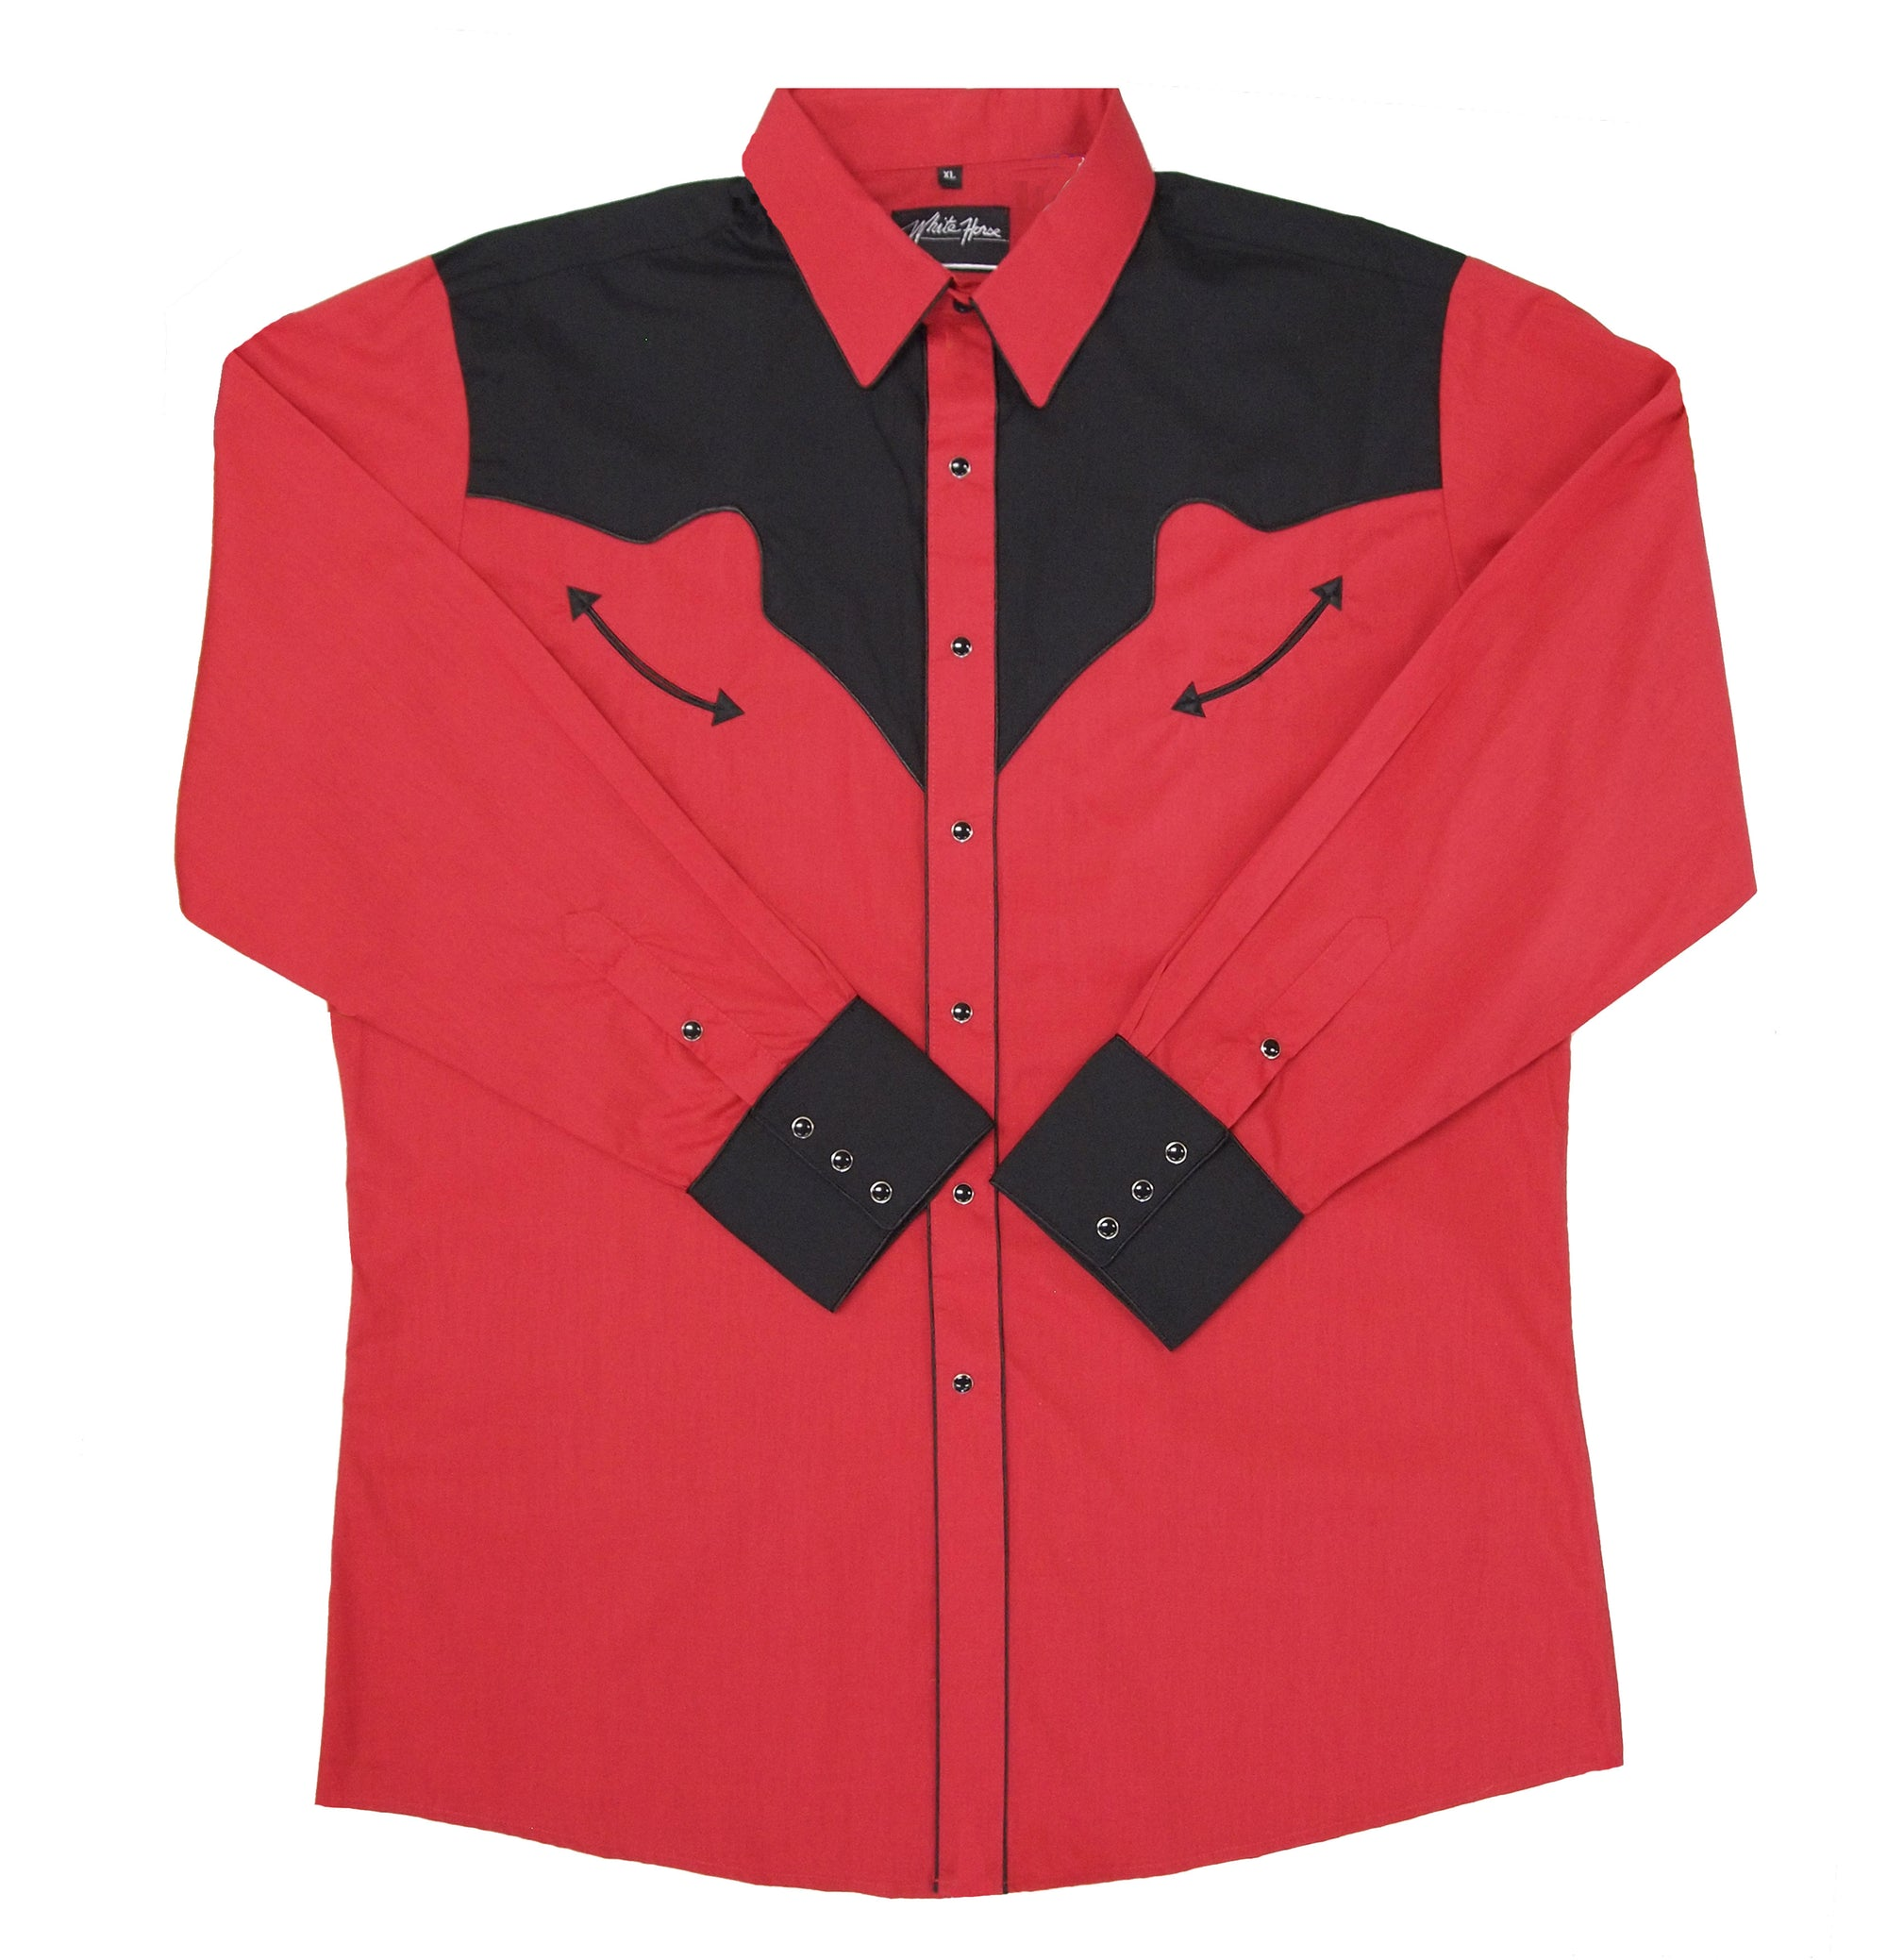 White Horse Men's Red/Black Yoke & Cuffs Shirt